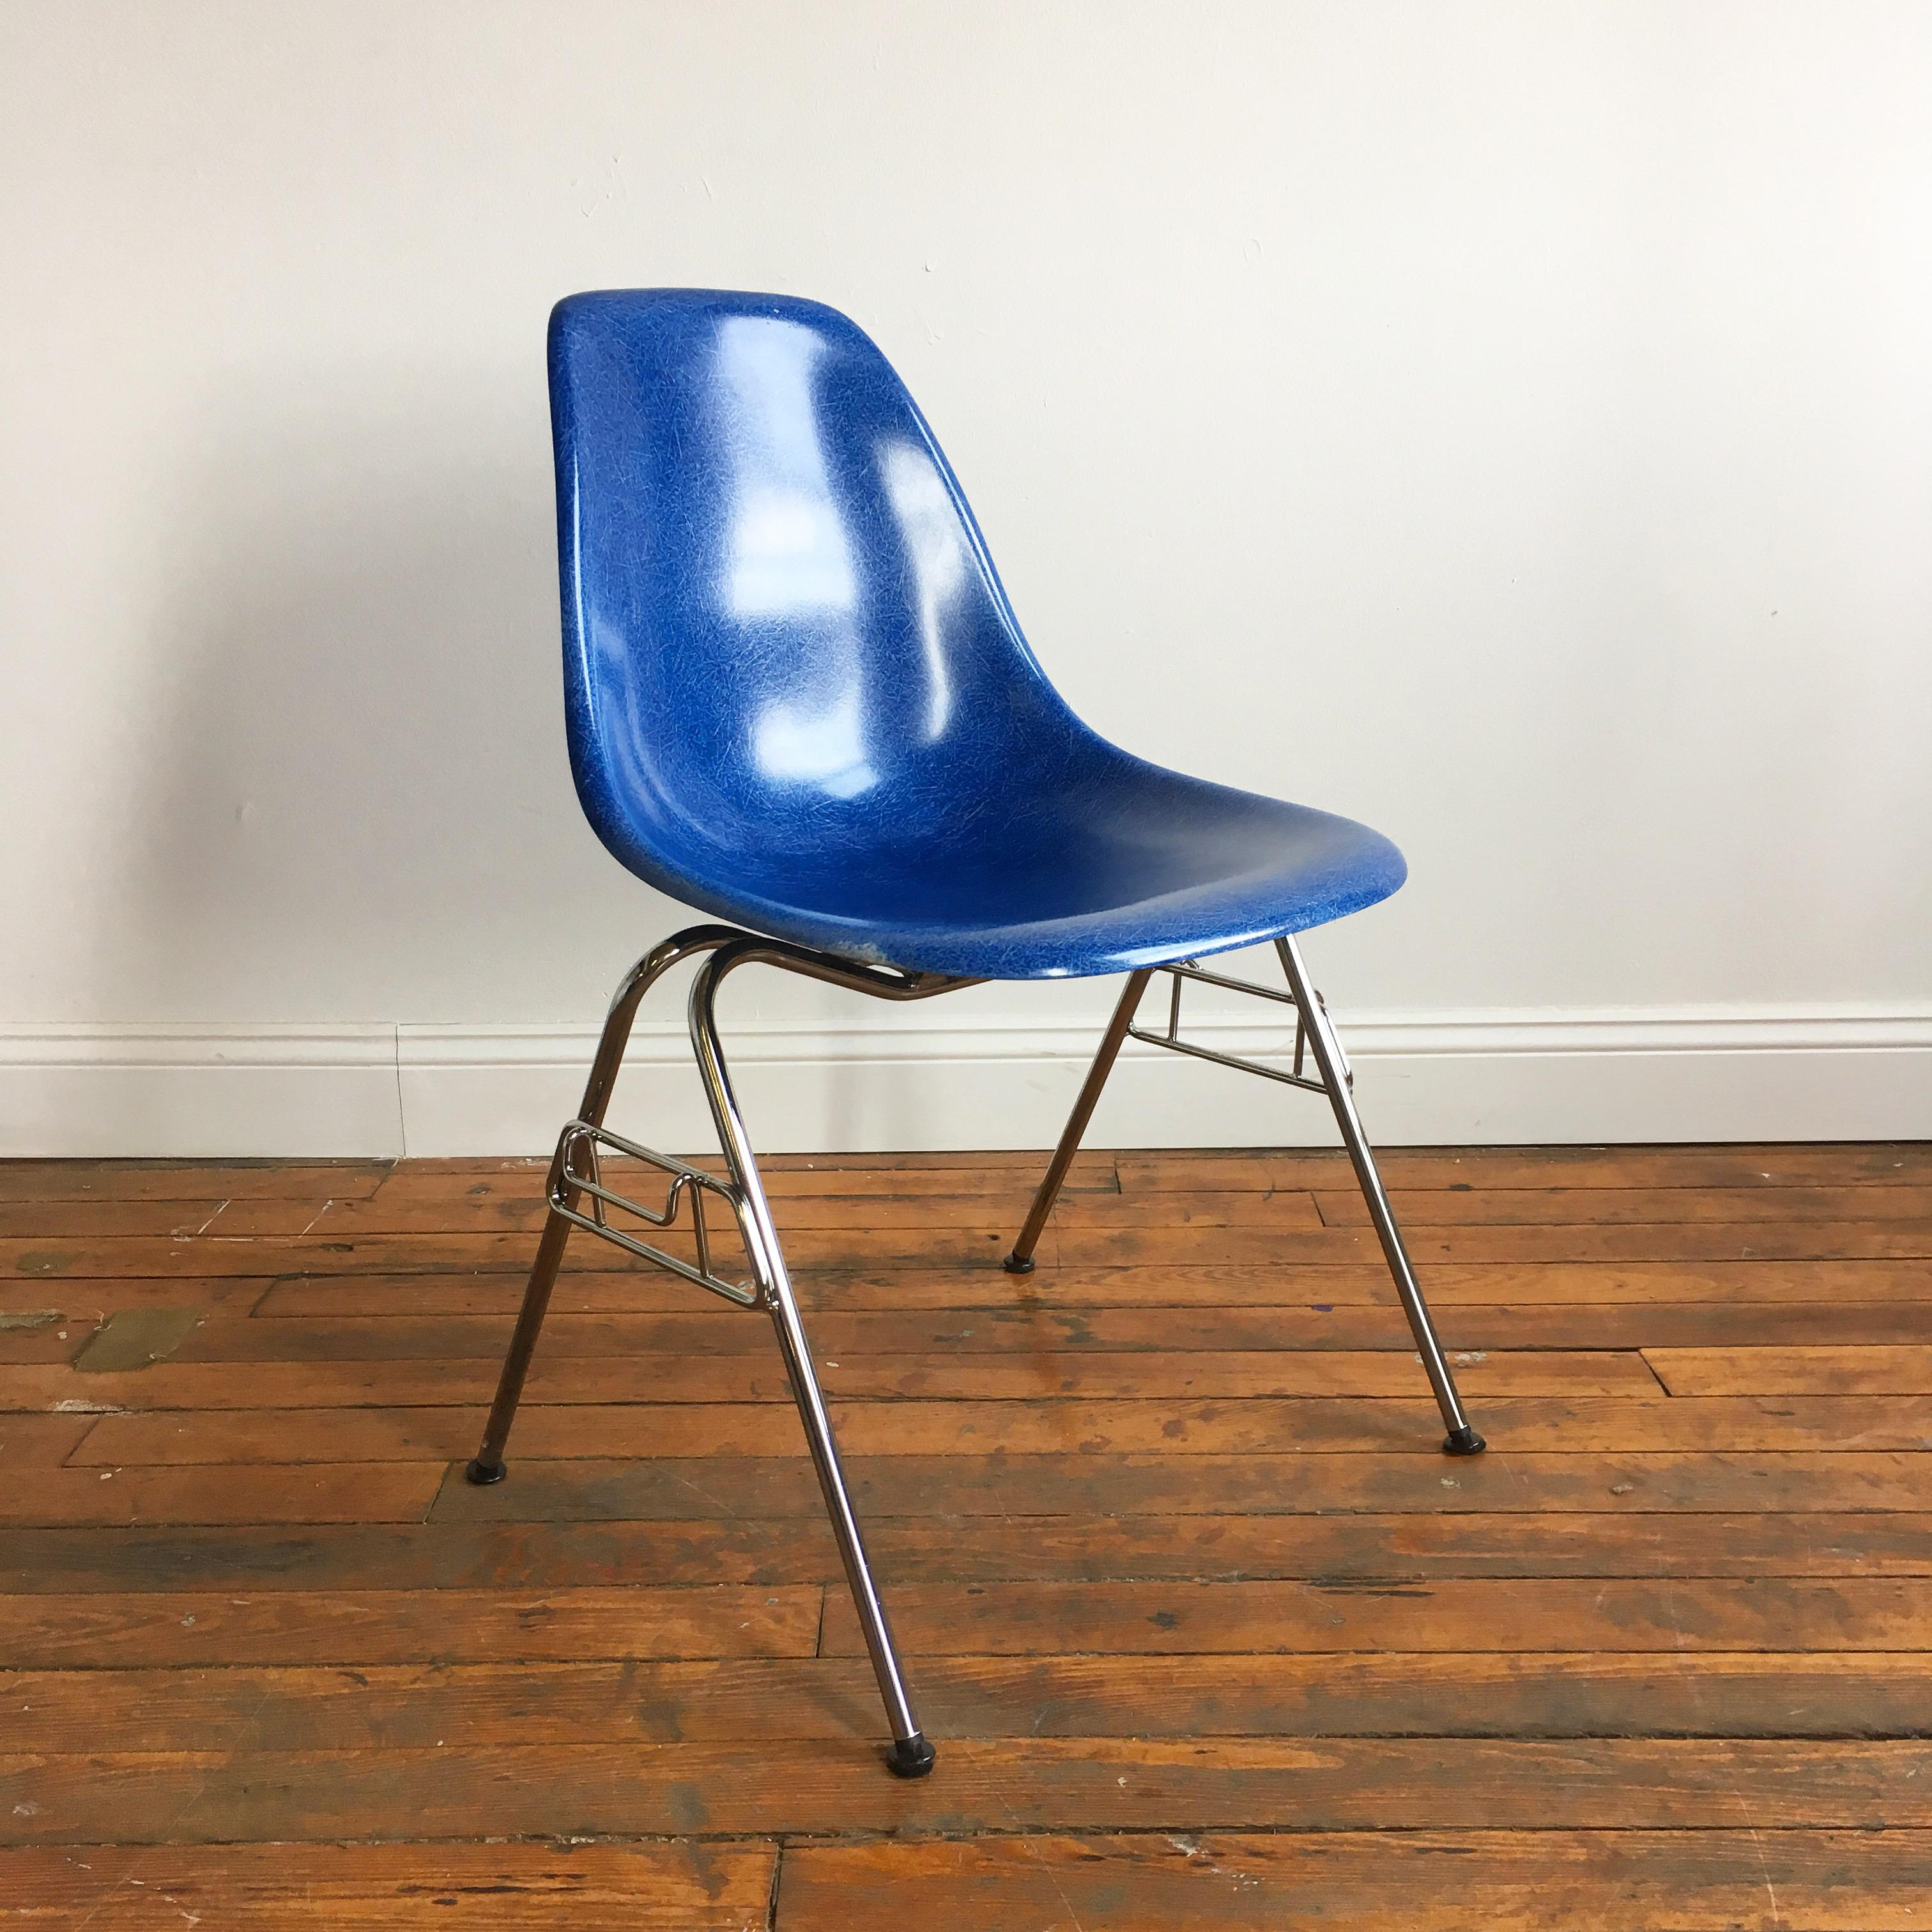 fiberglass shell chairs. herman miller eames fiberglass shell chair in royal blue - image 2 of 11 chairs